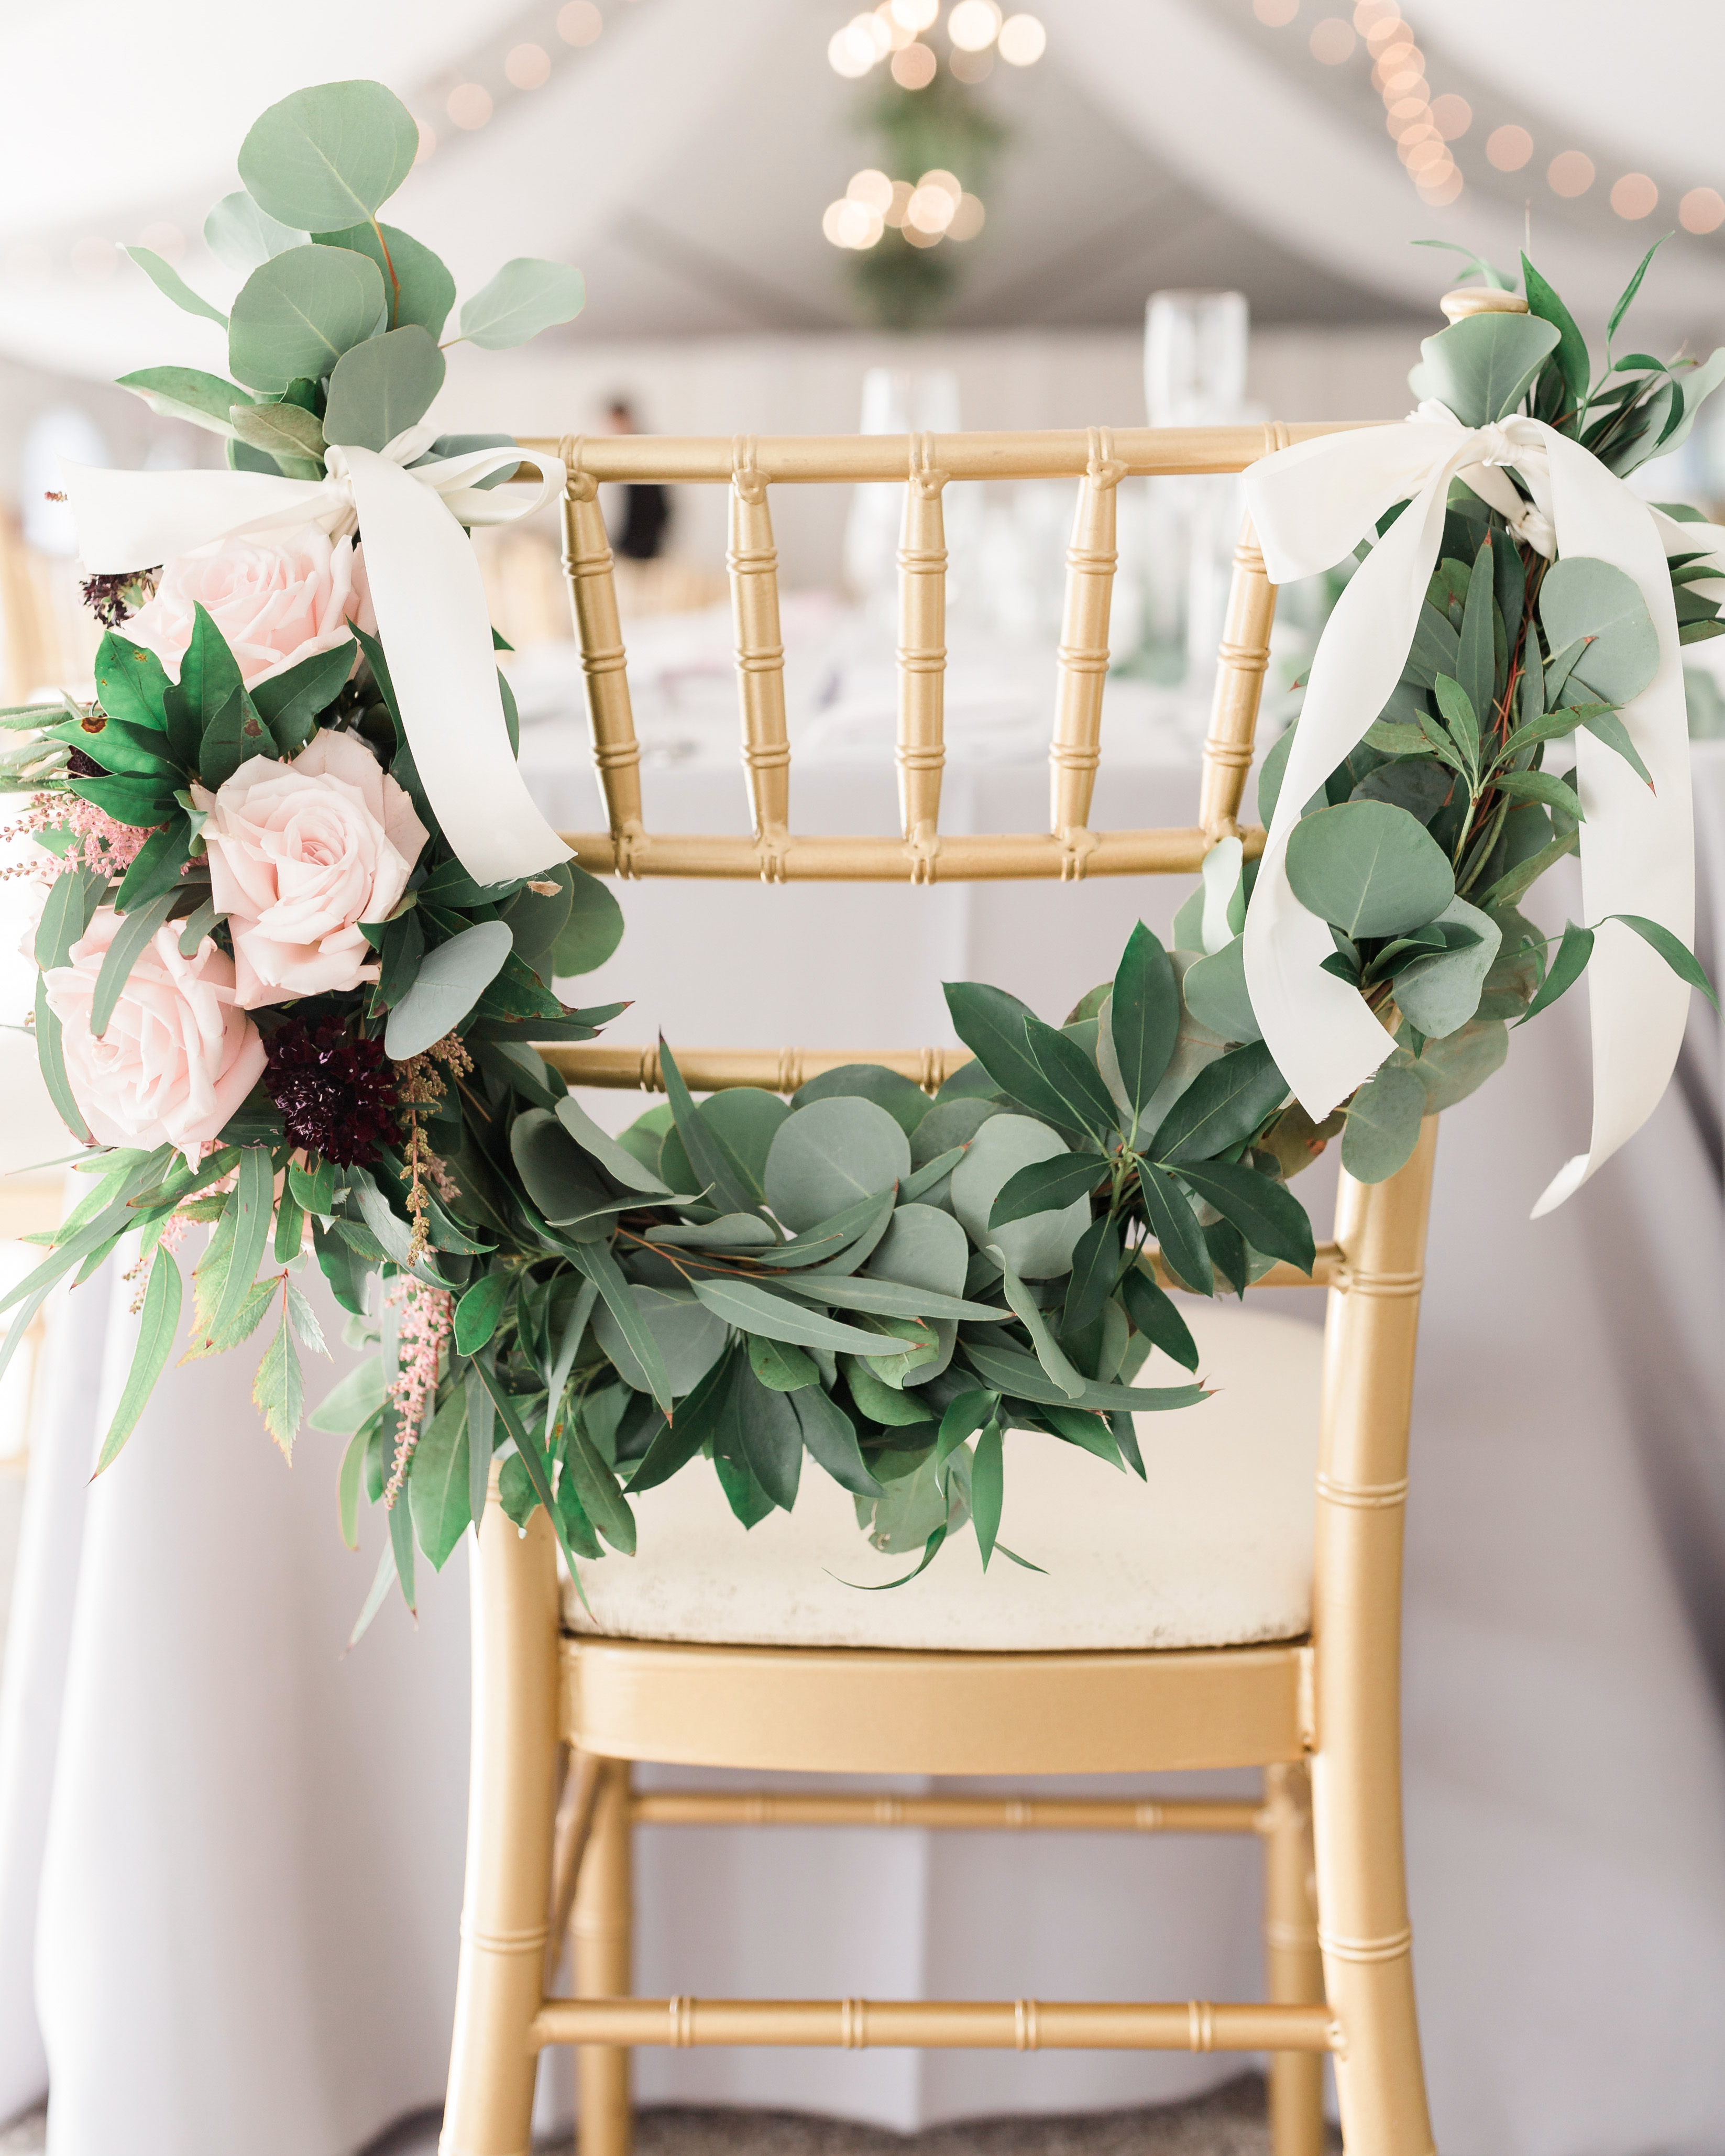 roses and astilbe around wood chair back